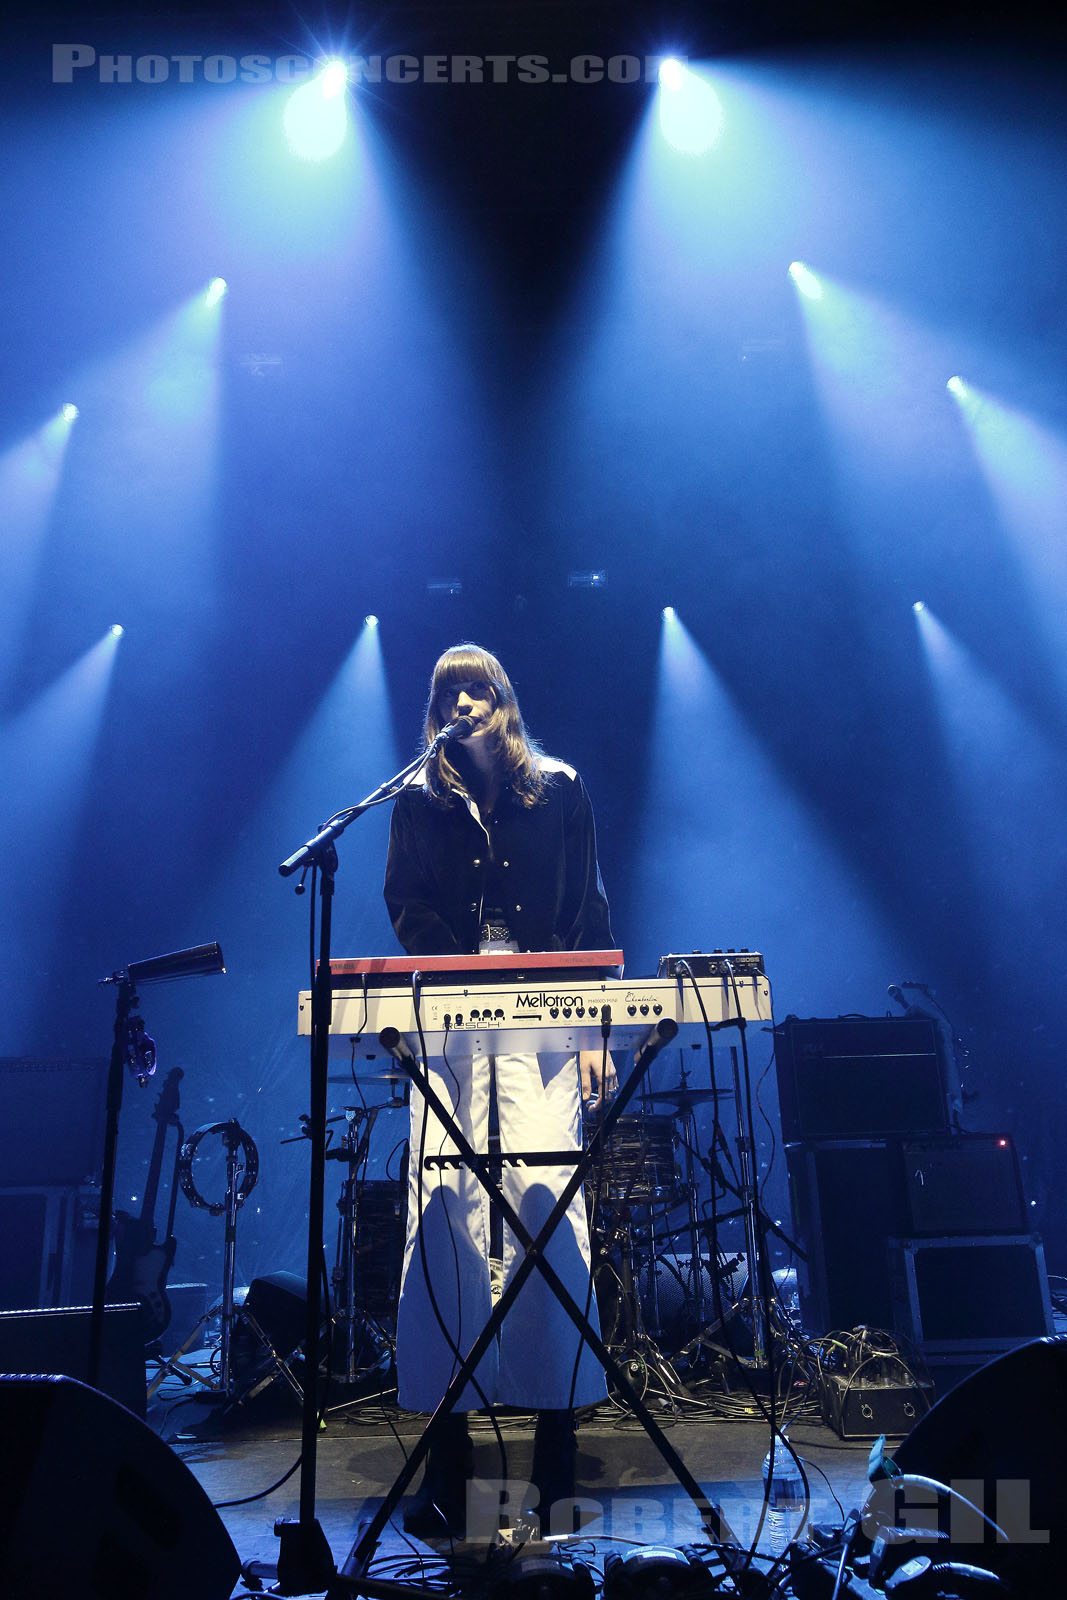 JUNIORE - 2019-01-25 - PARIS - Olympia